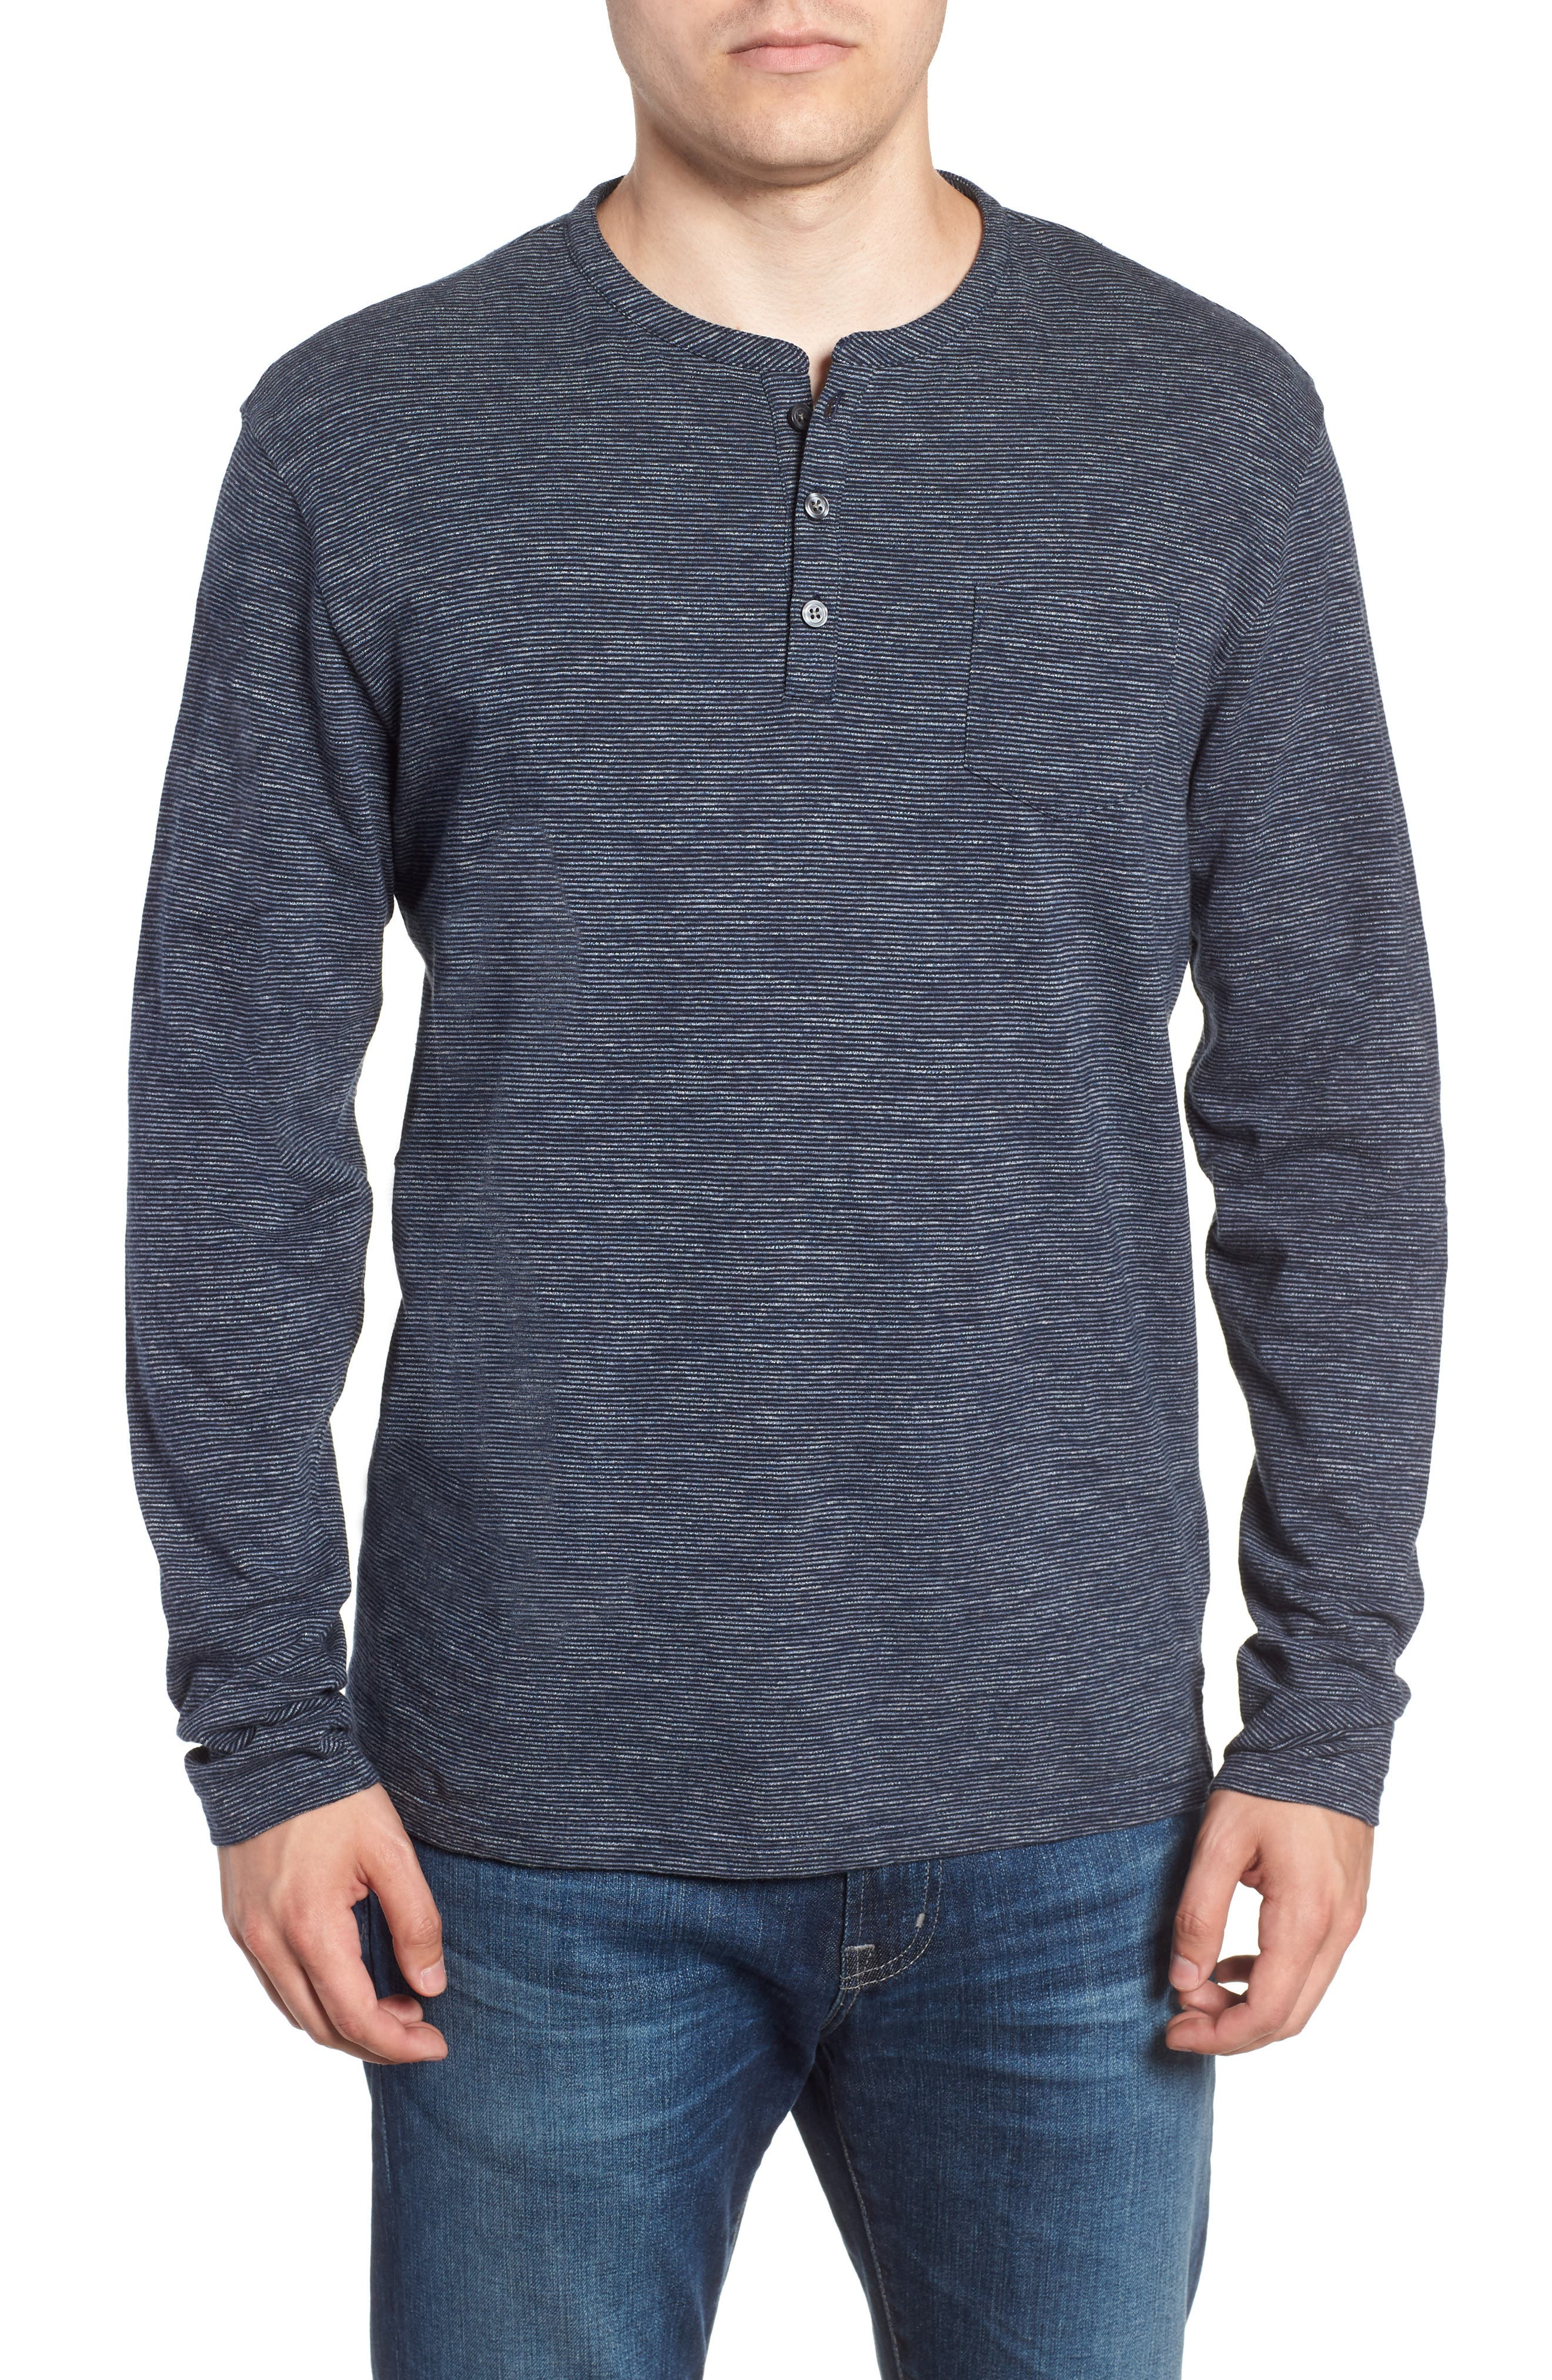 RODD & GUNN, Tasman Downs Regular Fit Henley, Main thumbnail 1, color, NAVY